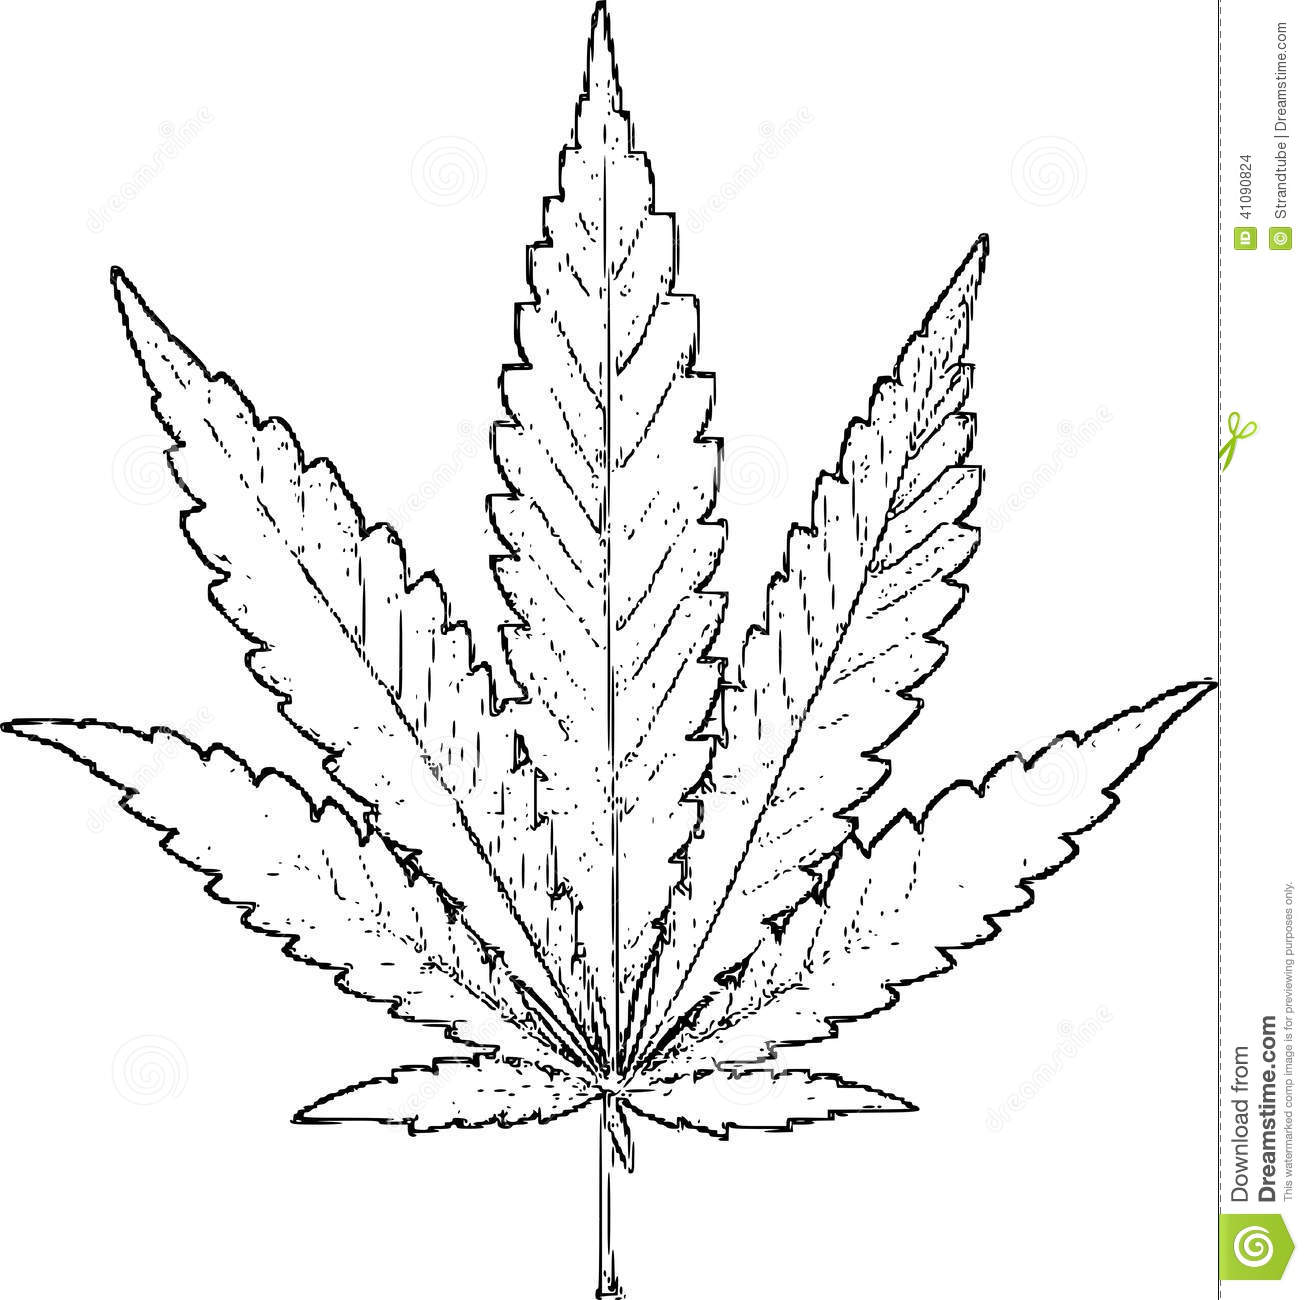 how to draw a pot leaf step by step easy leaf drawing outline at getdrawings free download a easy pot step leaf by draw how to step